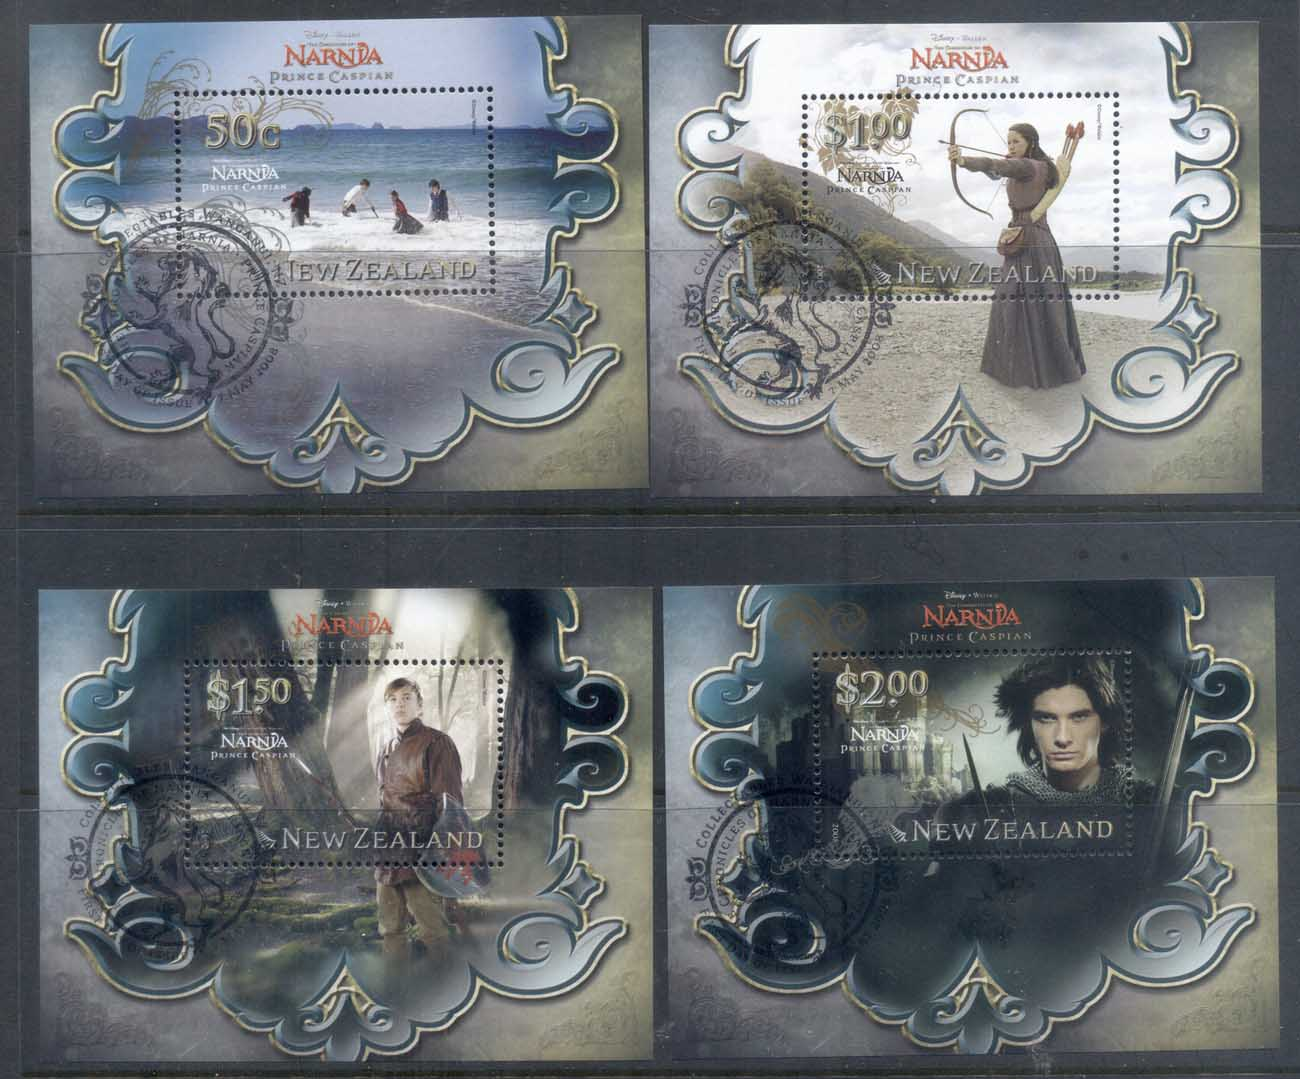 New Zealand 2008 Narnia, Prince Caspian MS CTO/FDI